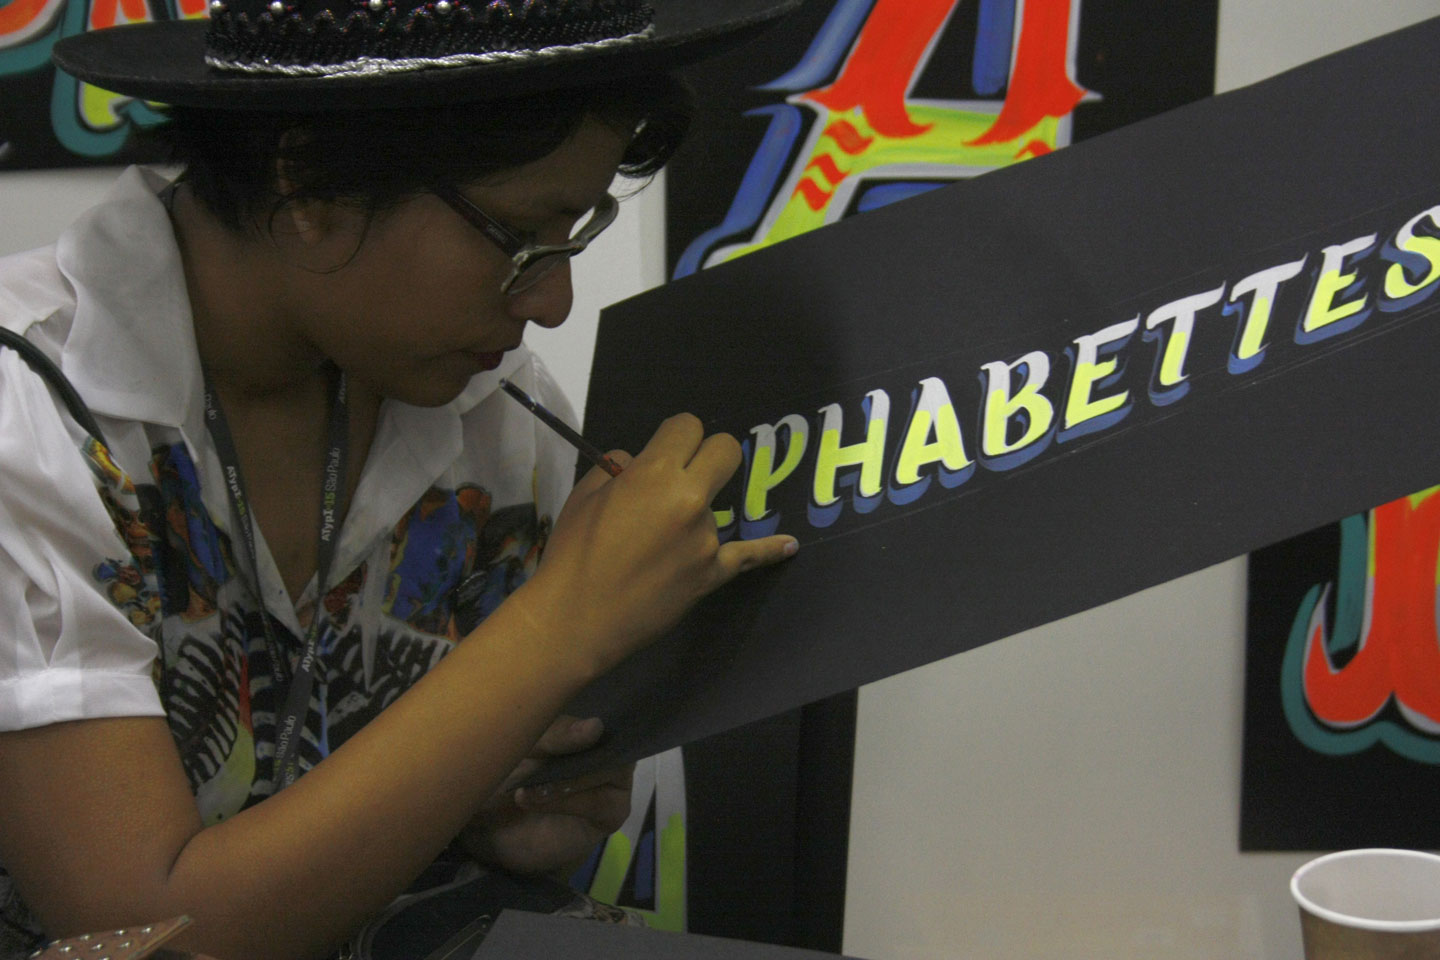 Azucena drawing the customised header for Alphabette's blog